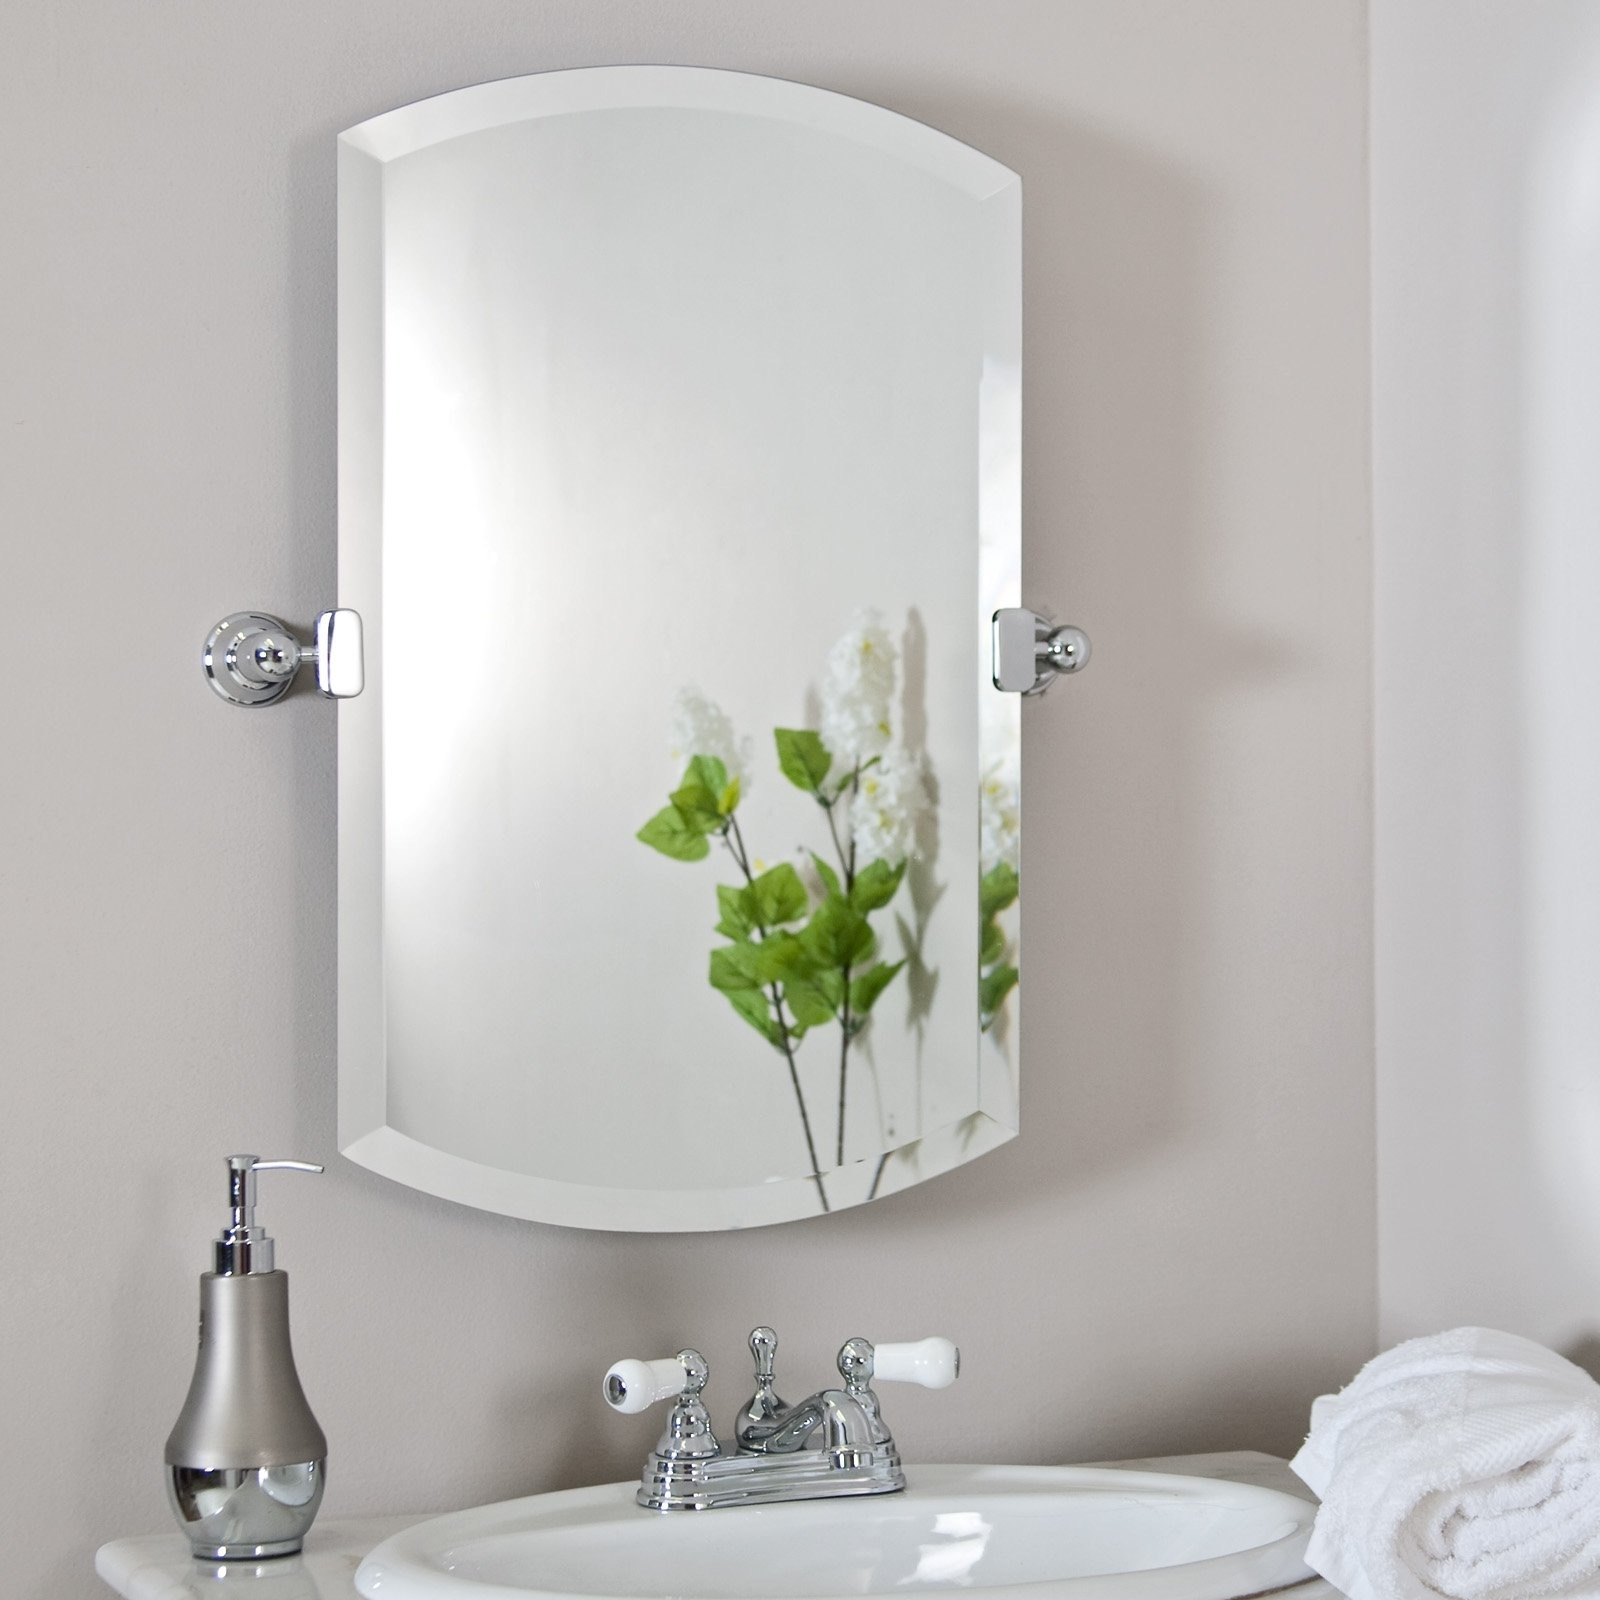 Super Ideas Bathroom Mirror Design 13 Mesmerizing Mirrors For A Throughout Bright Coloured Mirrors (View 4 of 15)